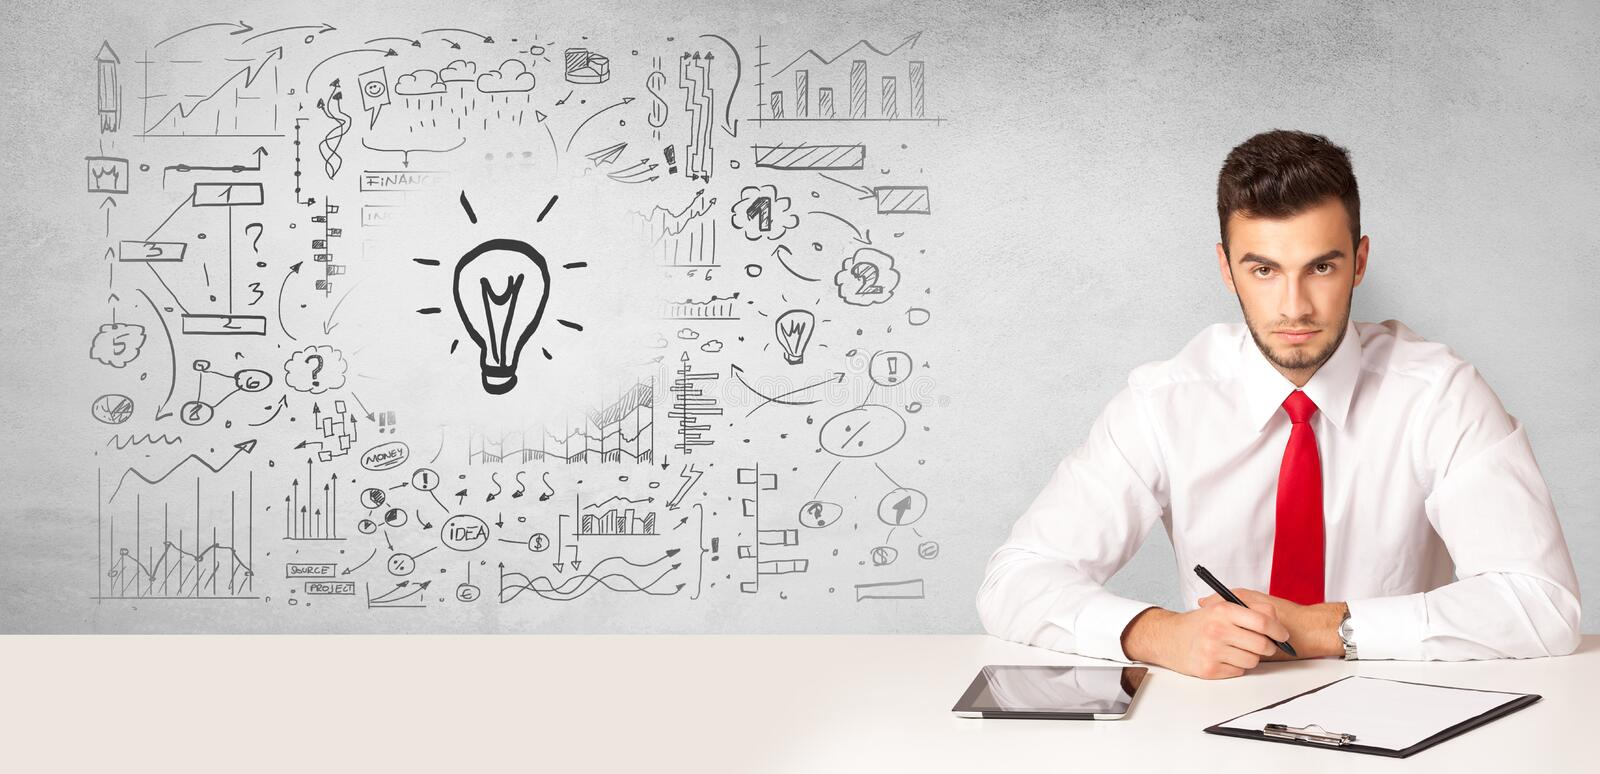 Business person with new idea concept. Young business person with new idea and workflow concept royalty free stock photos